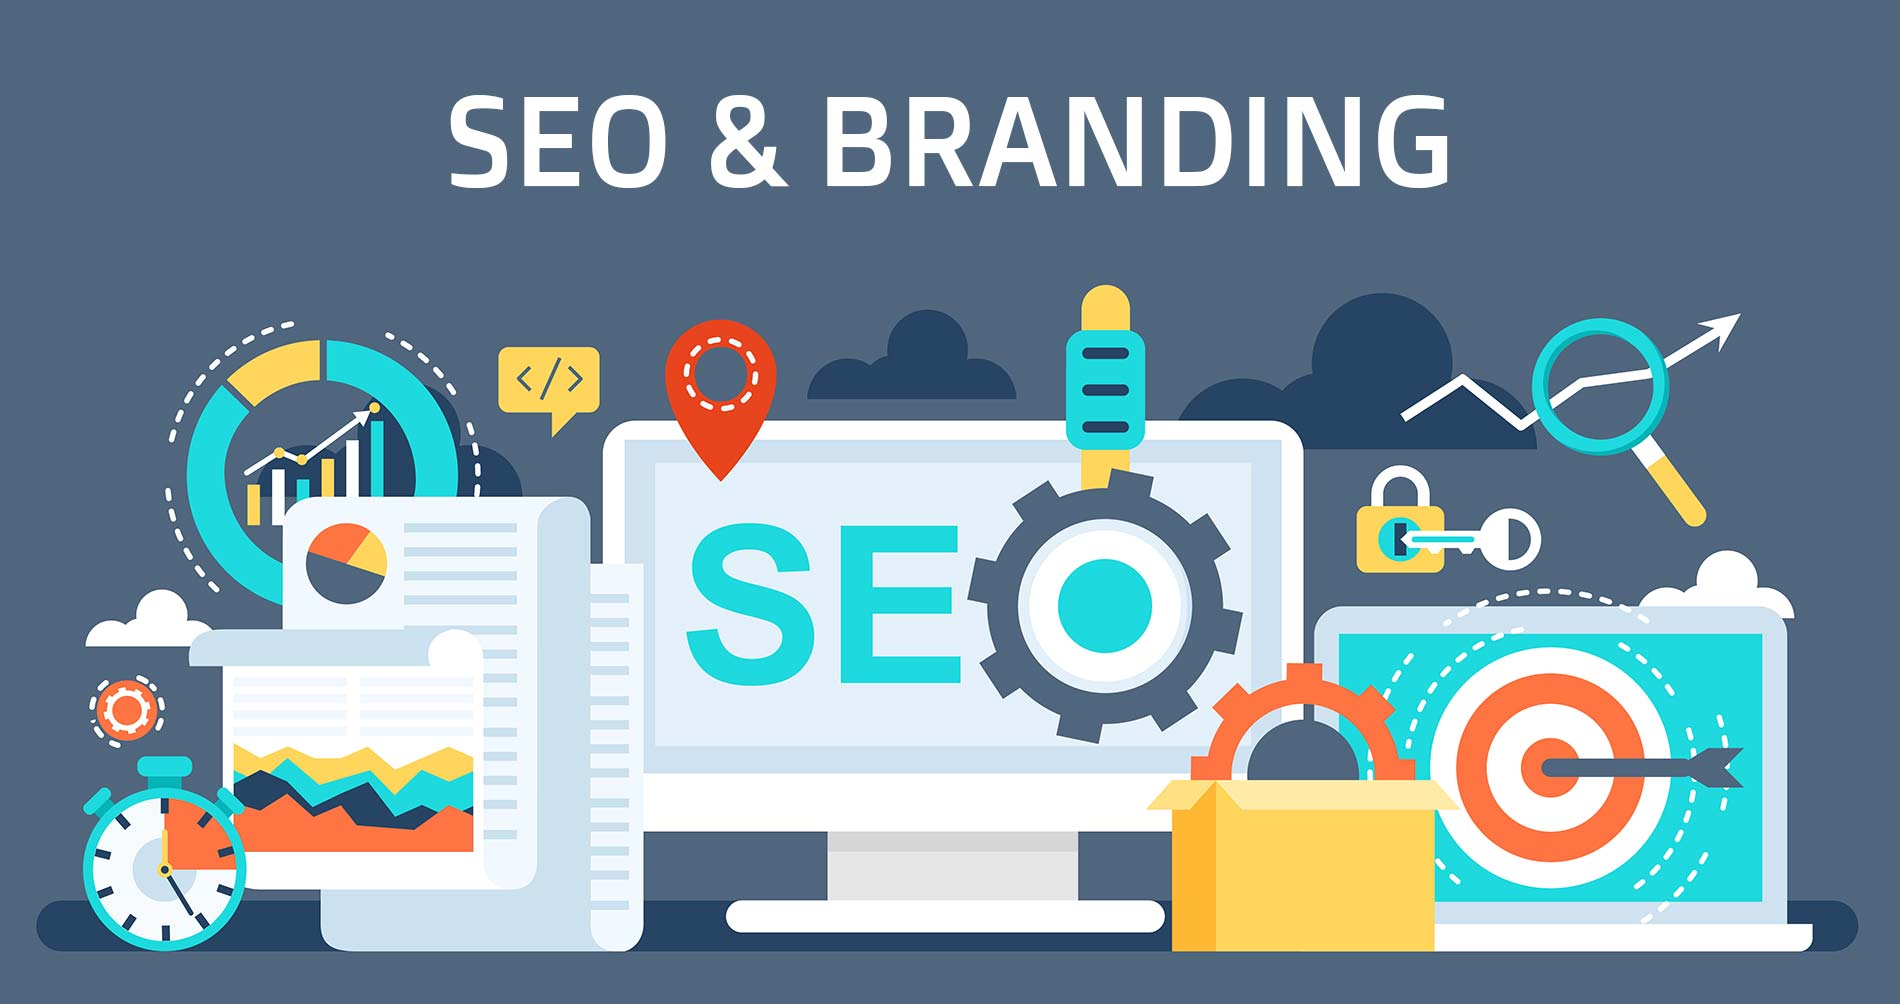 How Search Engine Ranking helps to build brand